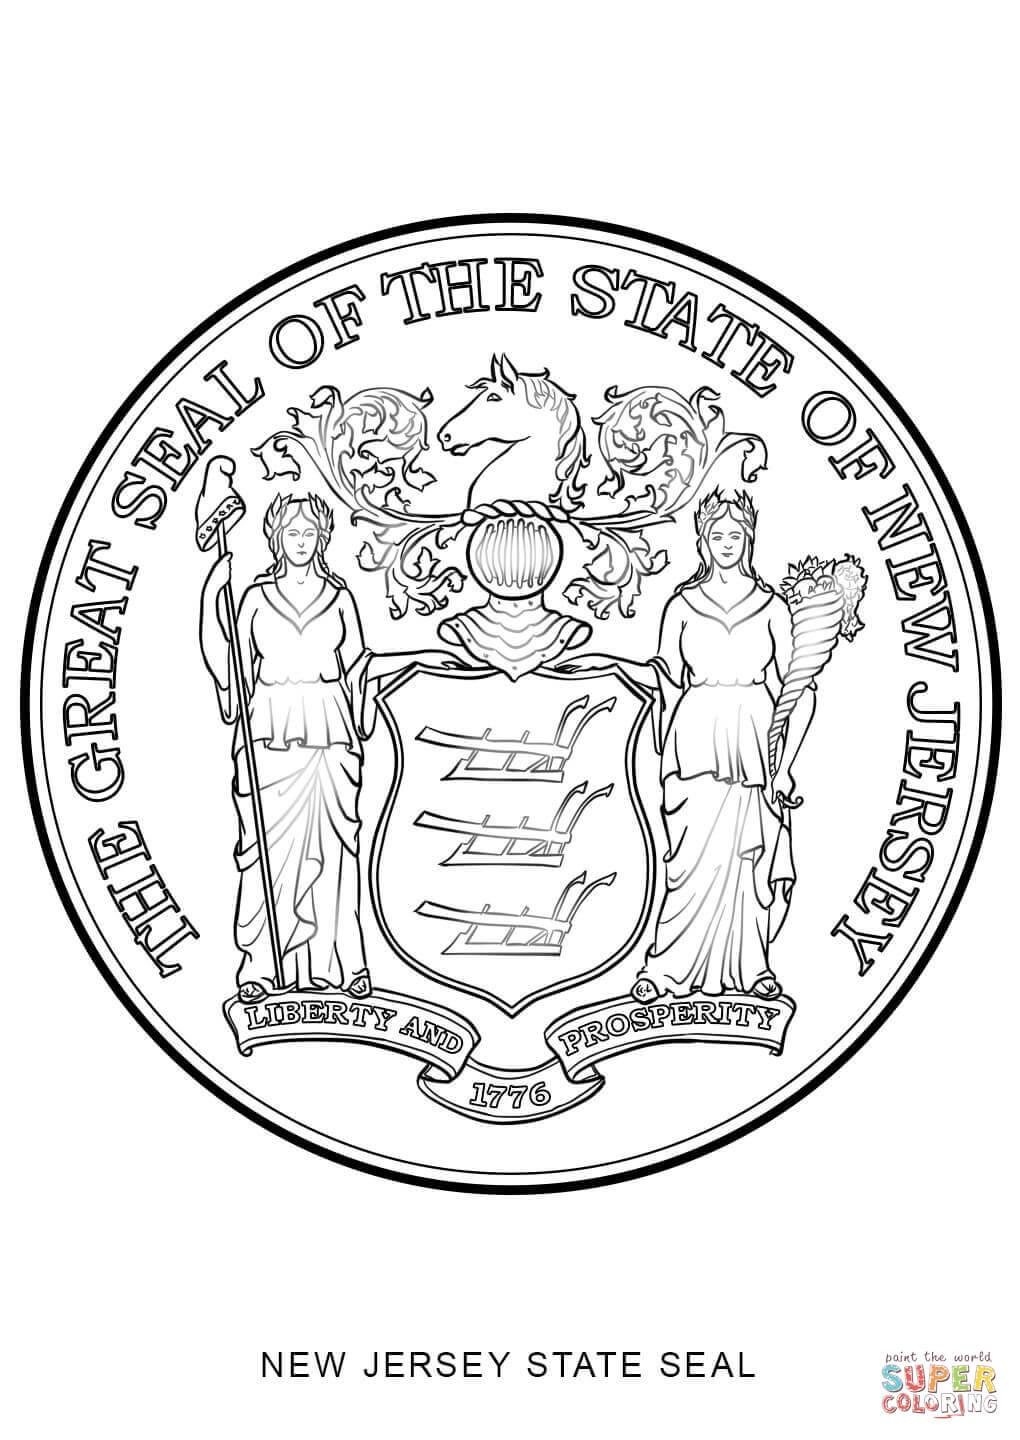 new jersey state tree new jersey state seal coloring page free printable state new tree jersey